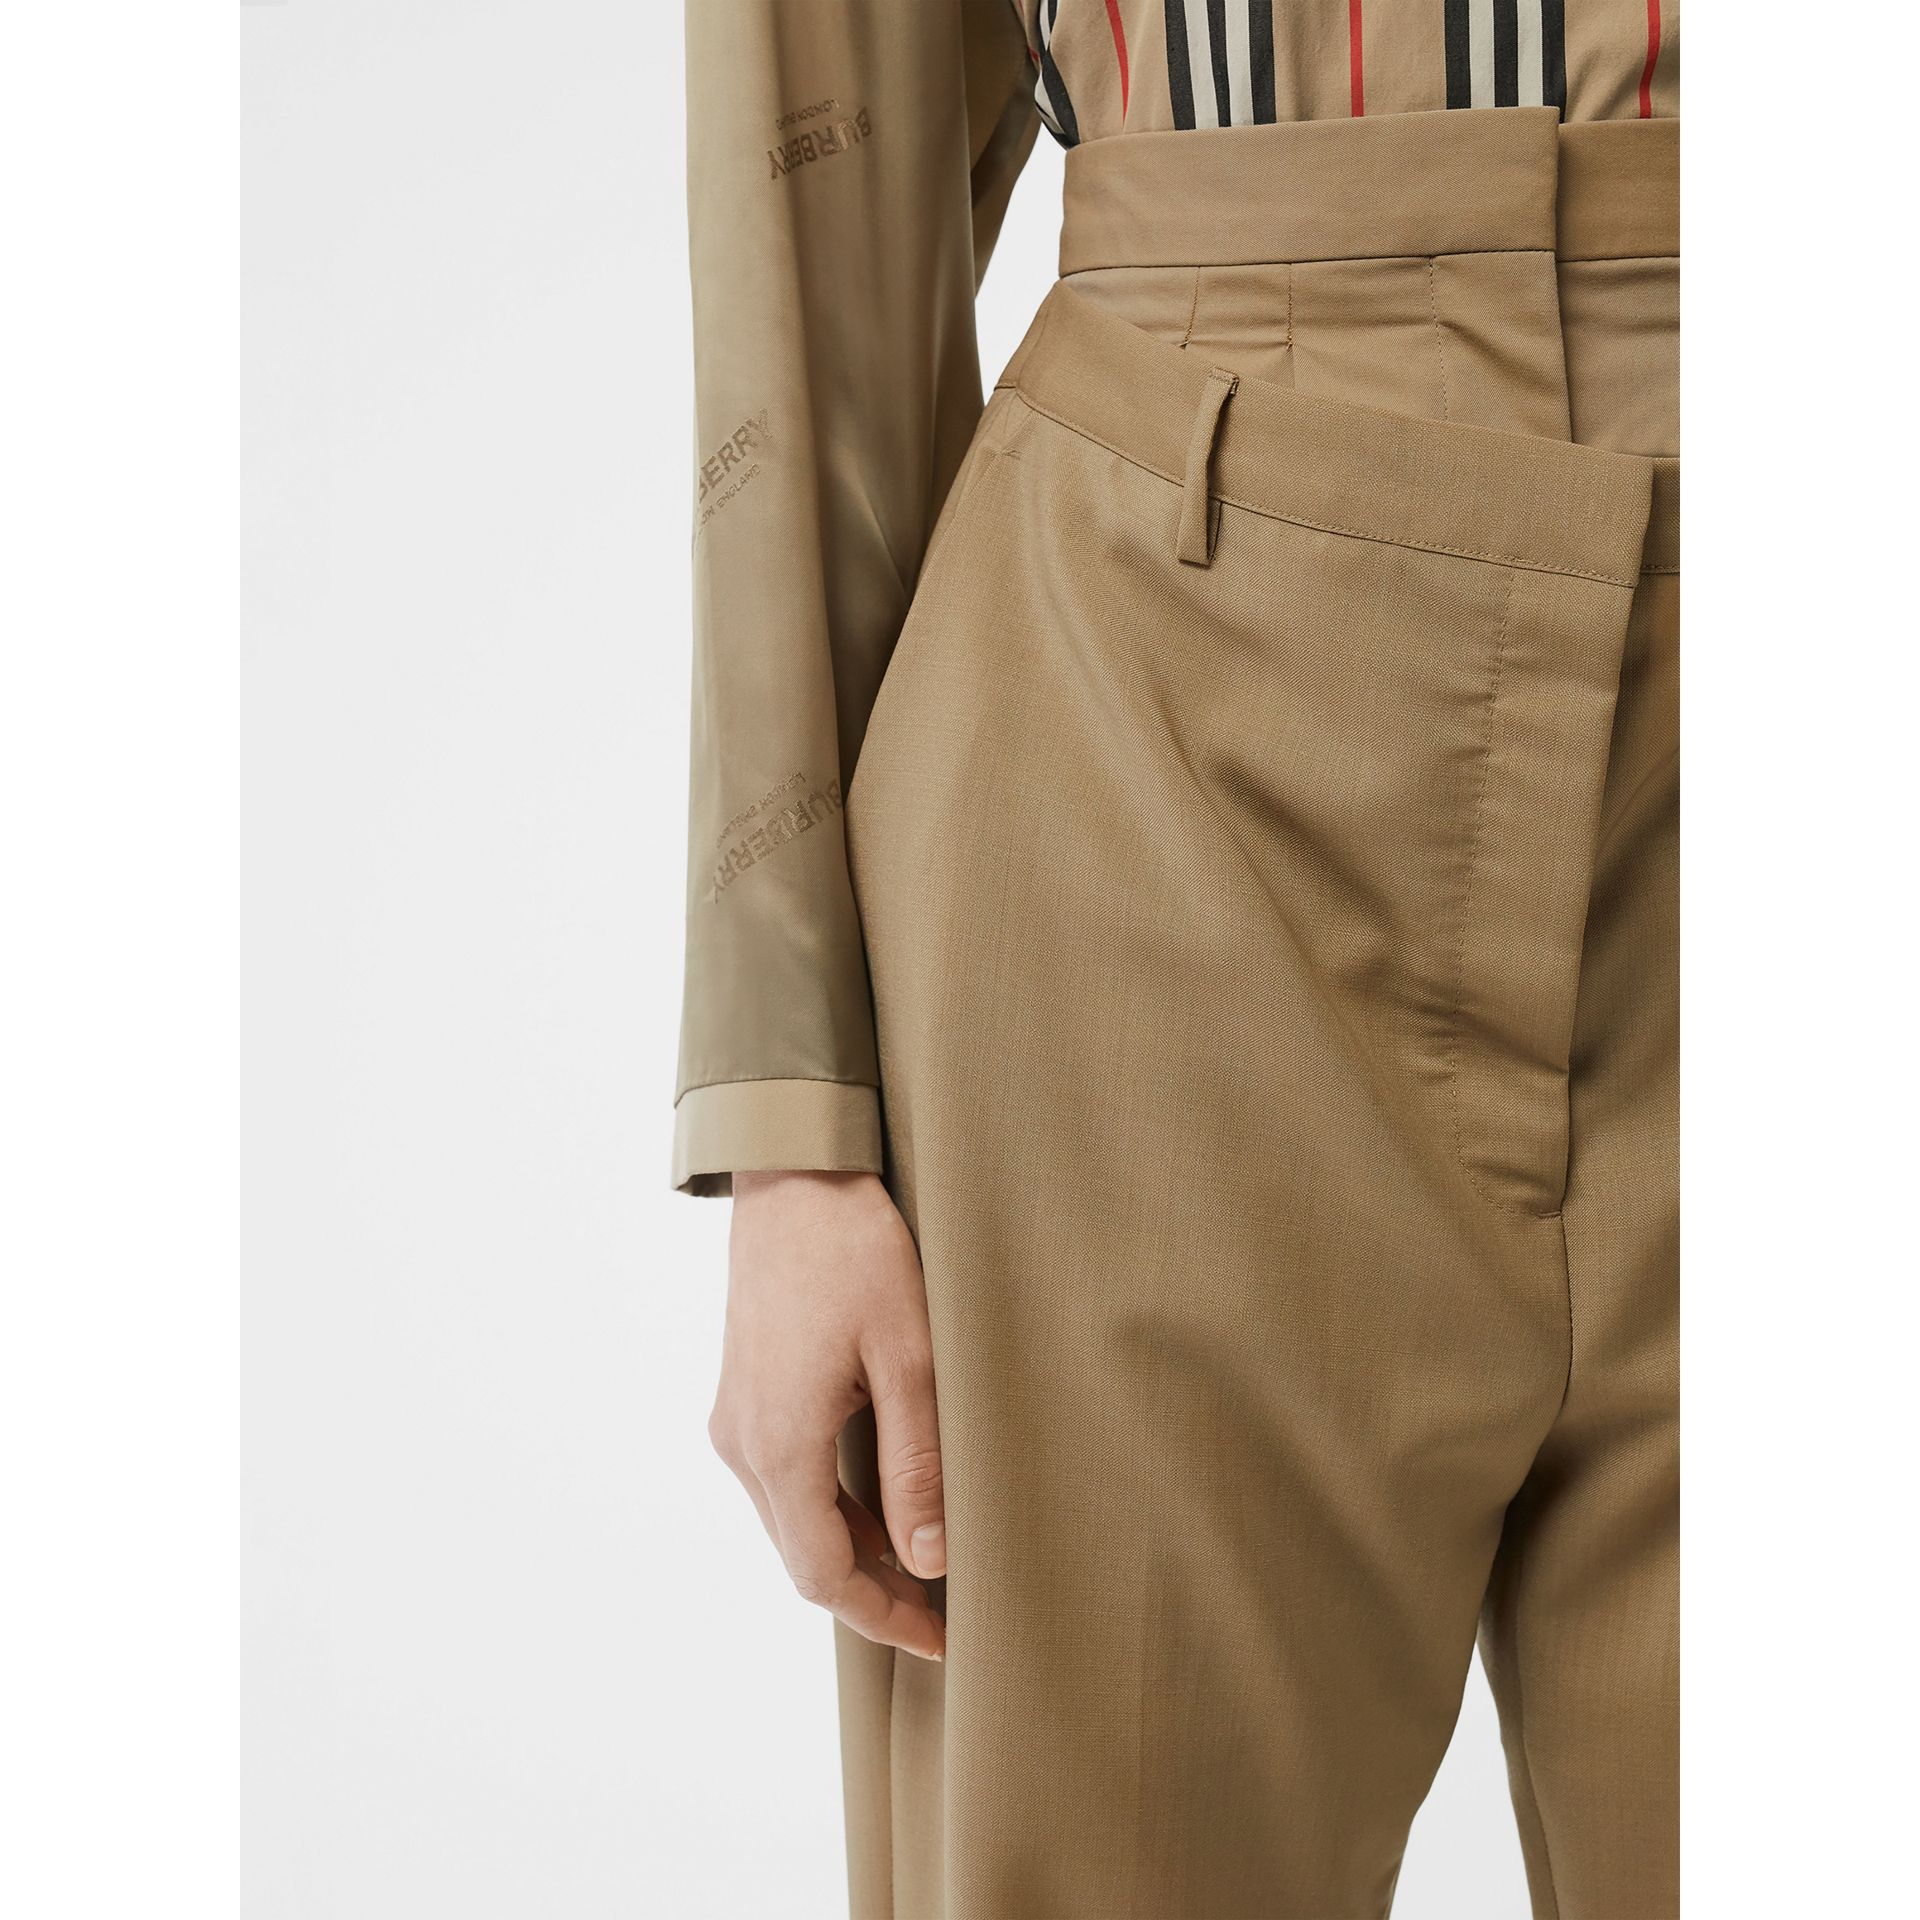 Double-waist Mohair Wool Trousers in Honey - Women | Burberry United States - gallery image 1